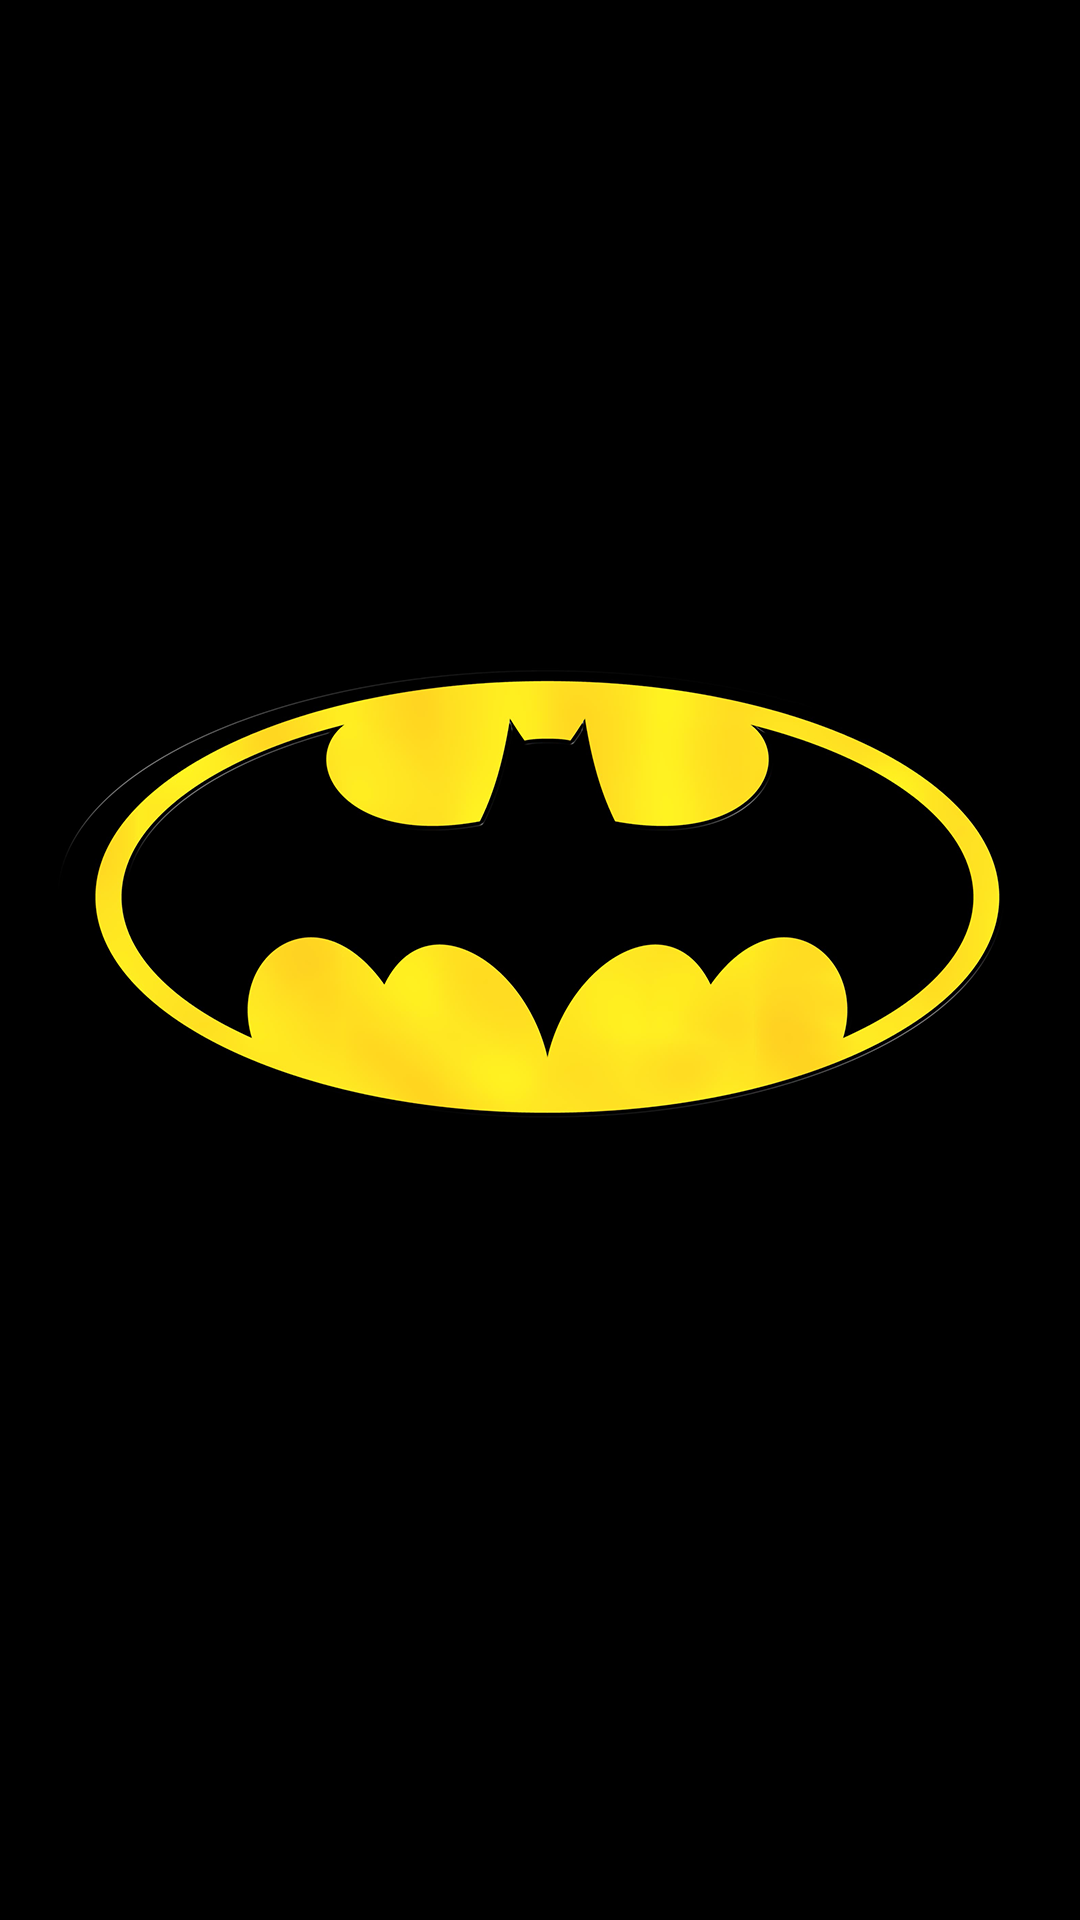 Original Batman IPhone Wallpaper